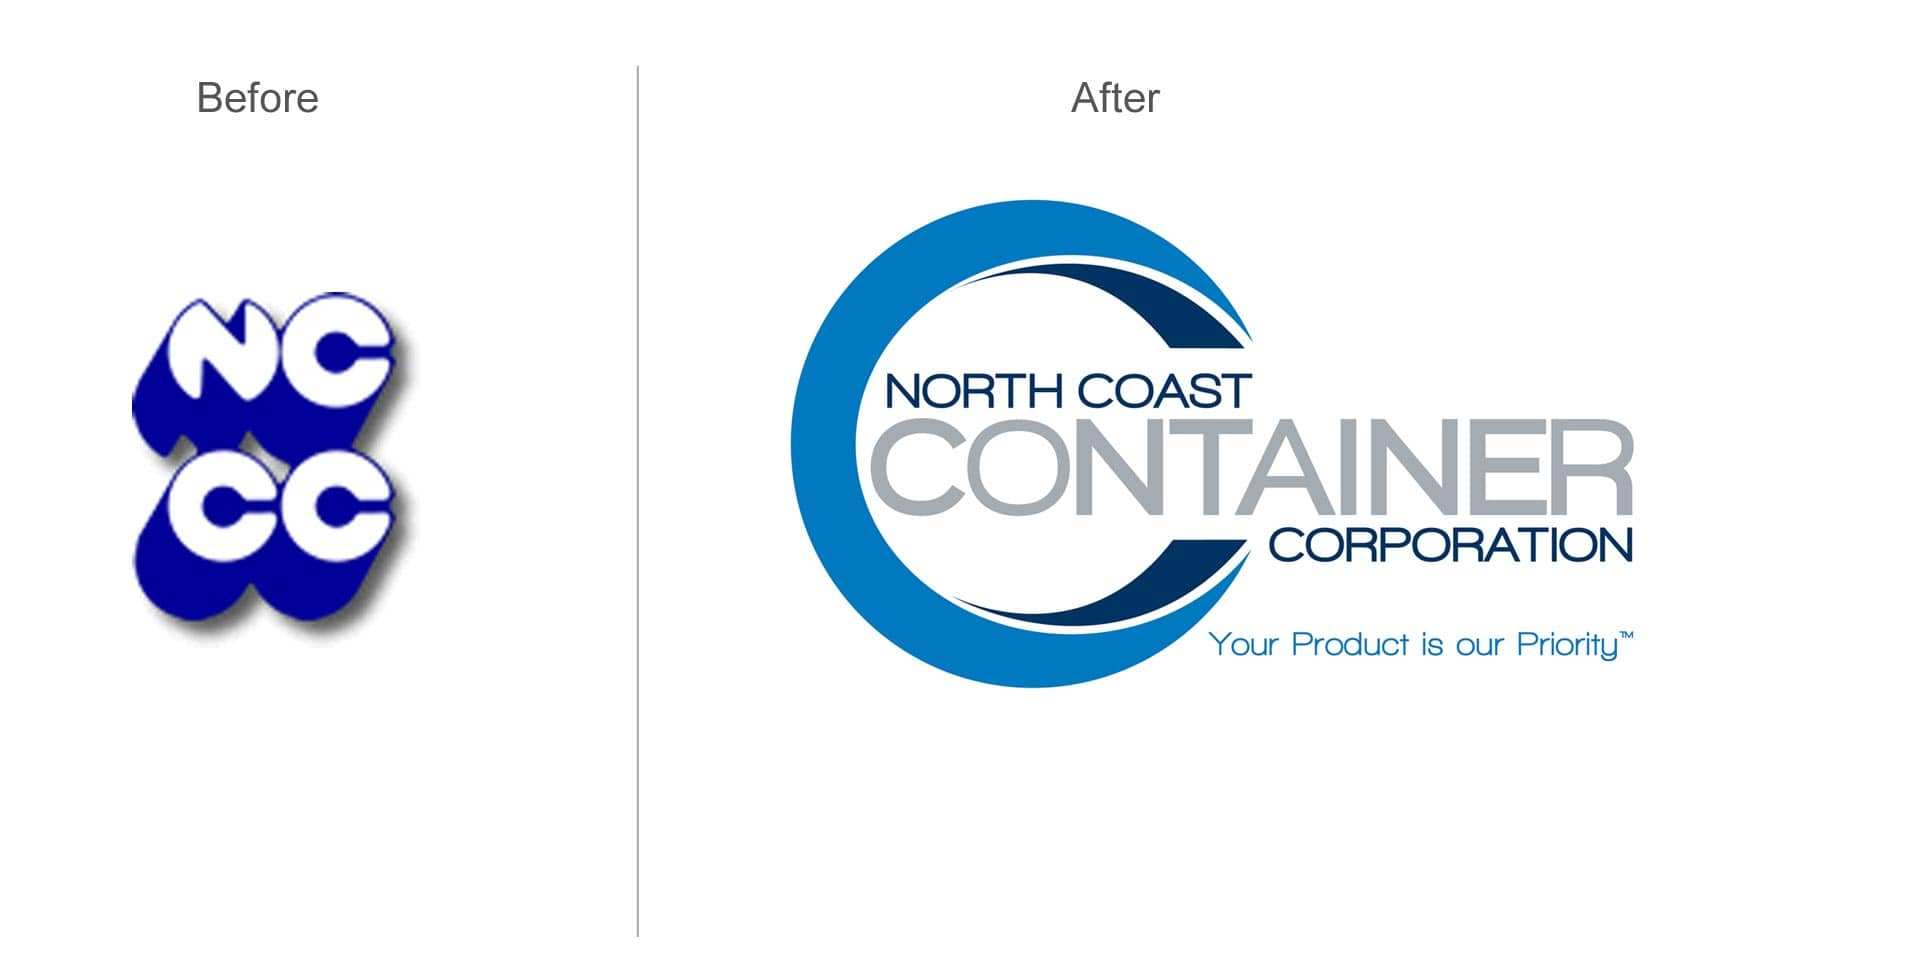 North Coast Container Brand Overhaul as Part of Website Strategy